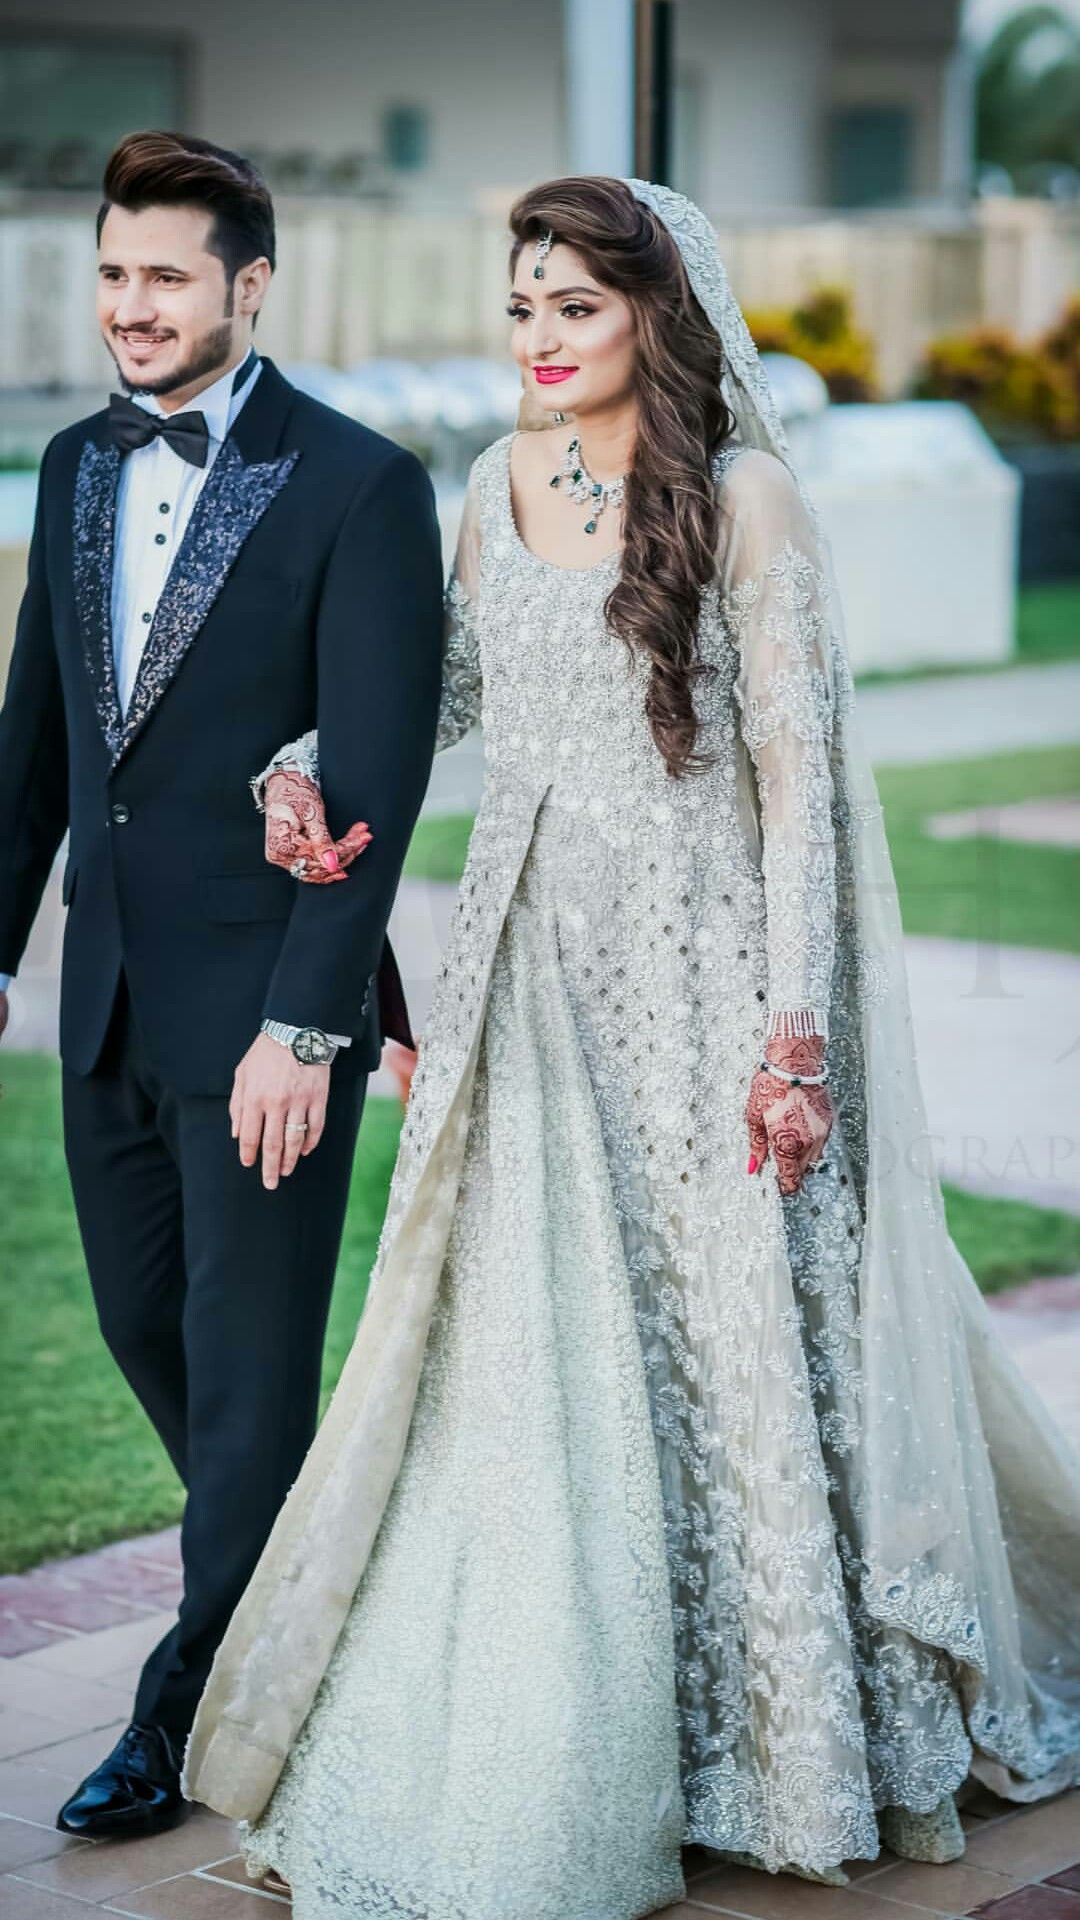 Pin By Arooj On Captivating Engagement Dress For Bride Groom